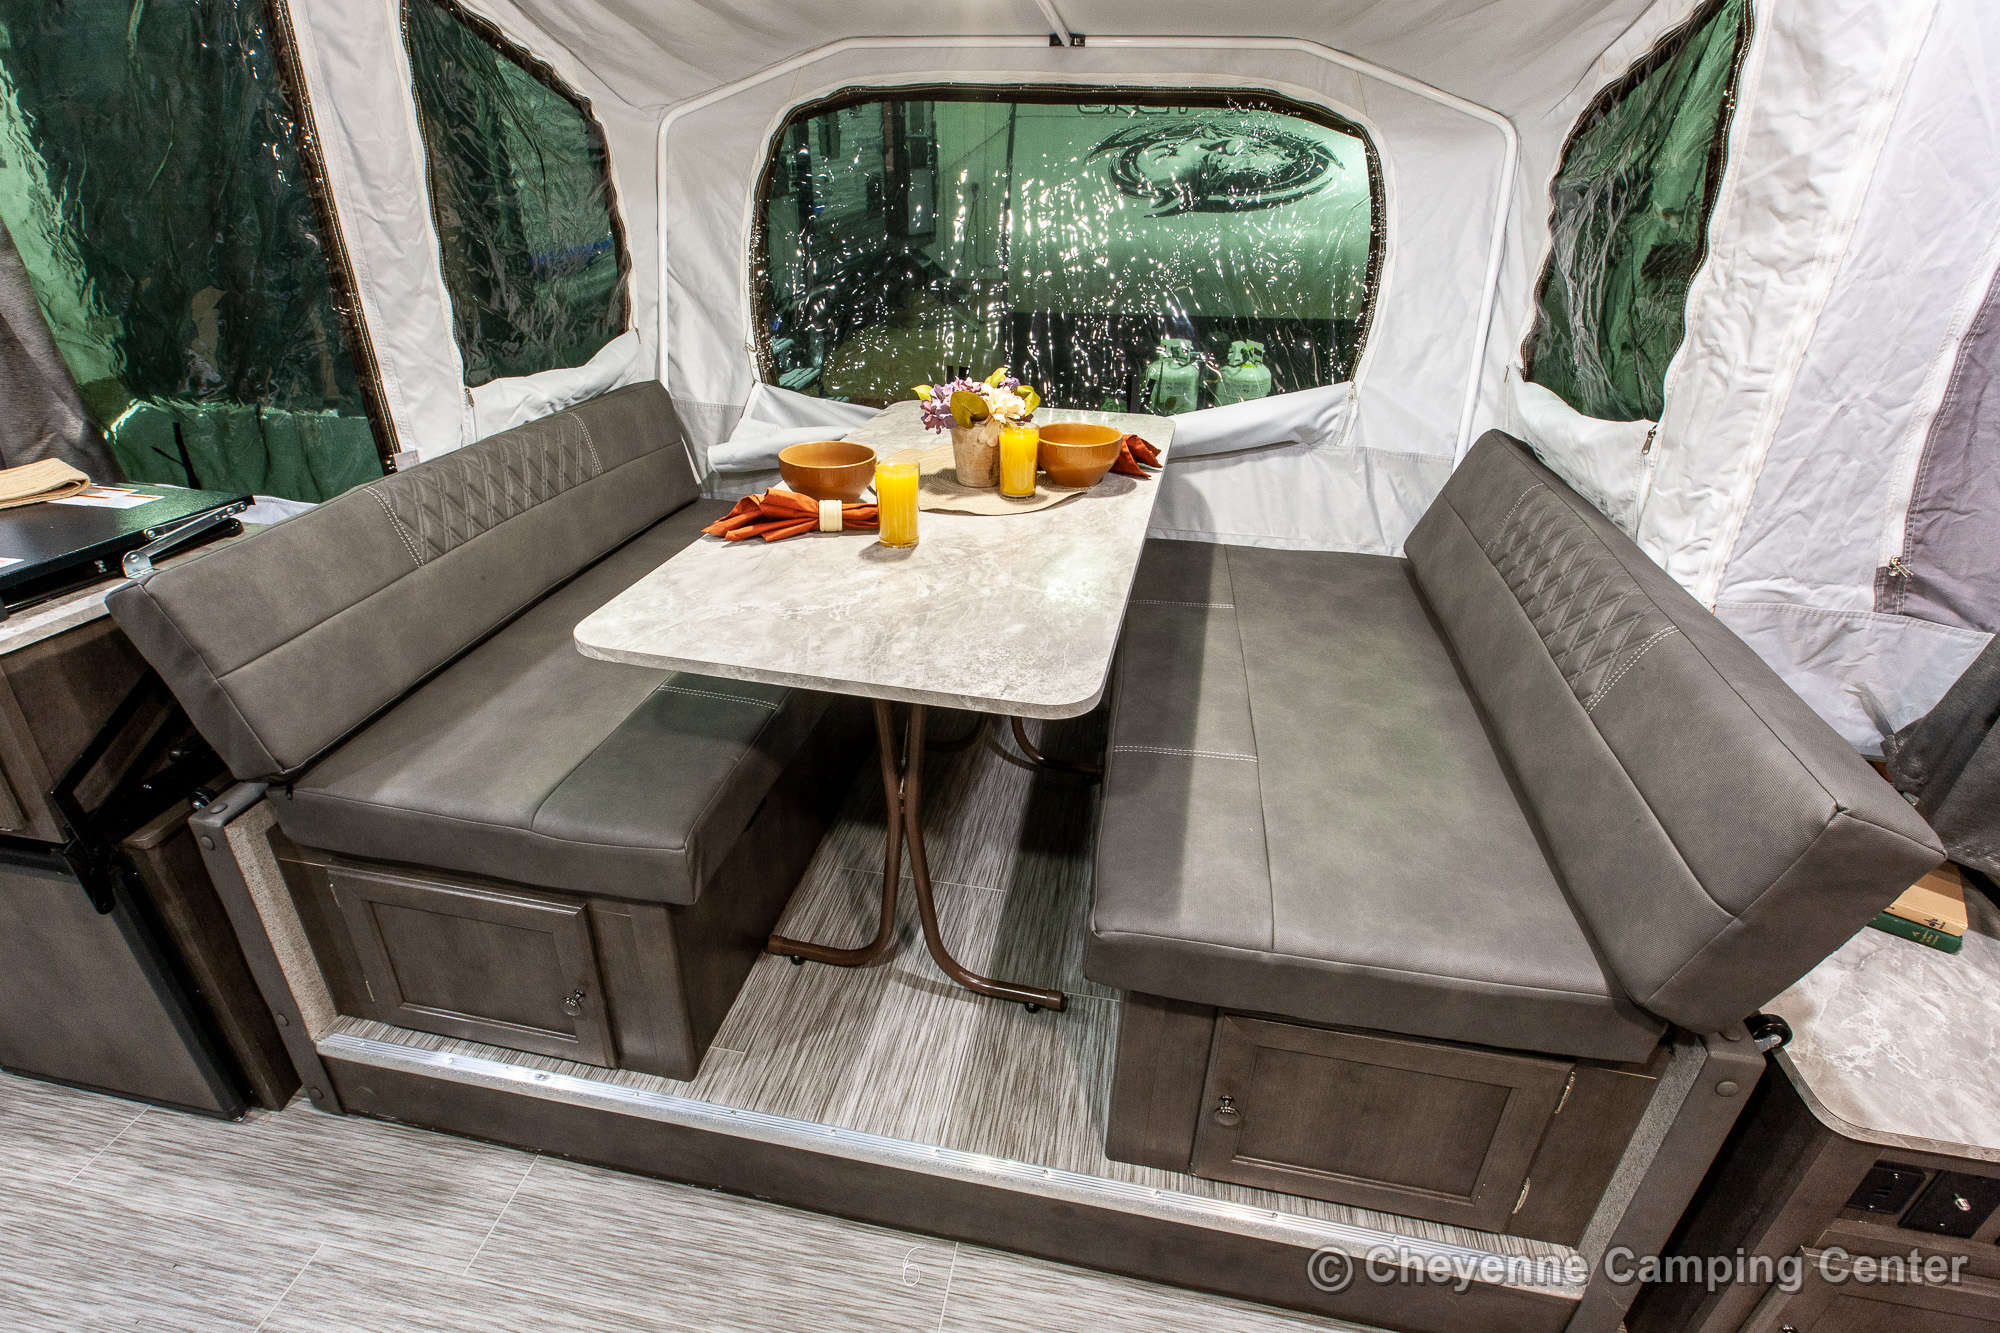 2020 Forest River Flagstaff Sports Enthusiast 28TSCSE Toy Hauler Folding Camper Interior Image